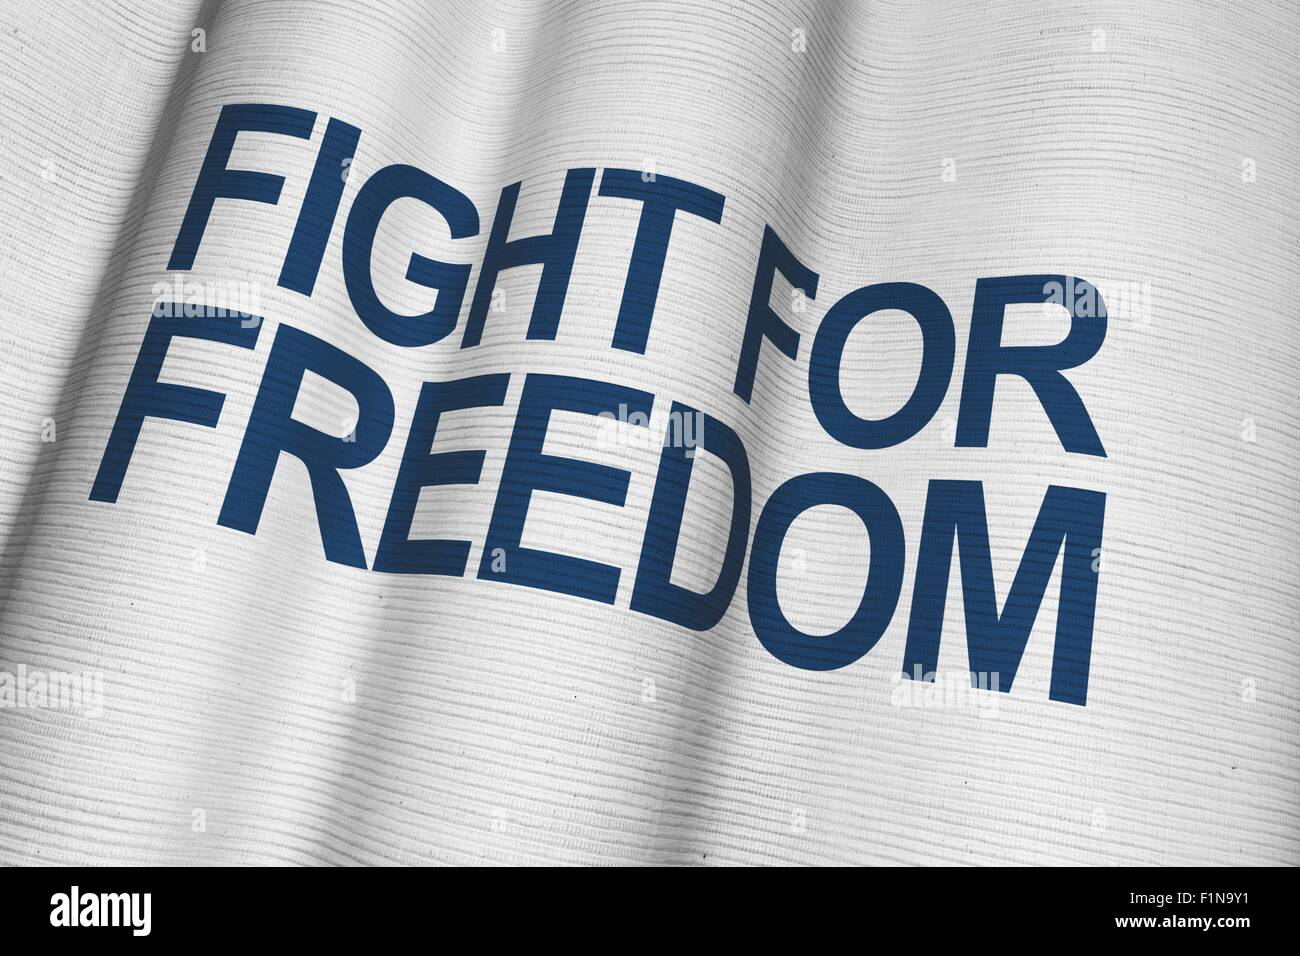 Fight For Freedom White Canvas Flag with Dark Blue Lettering. - Stock Image